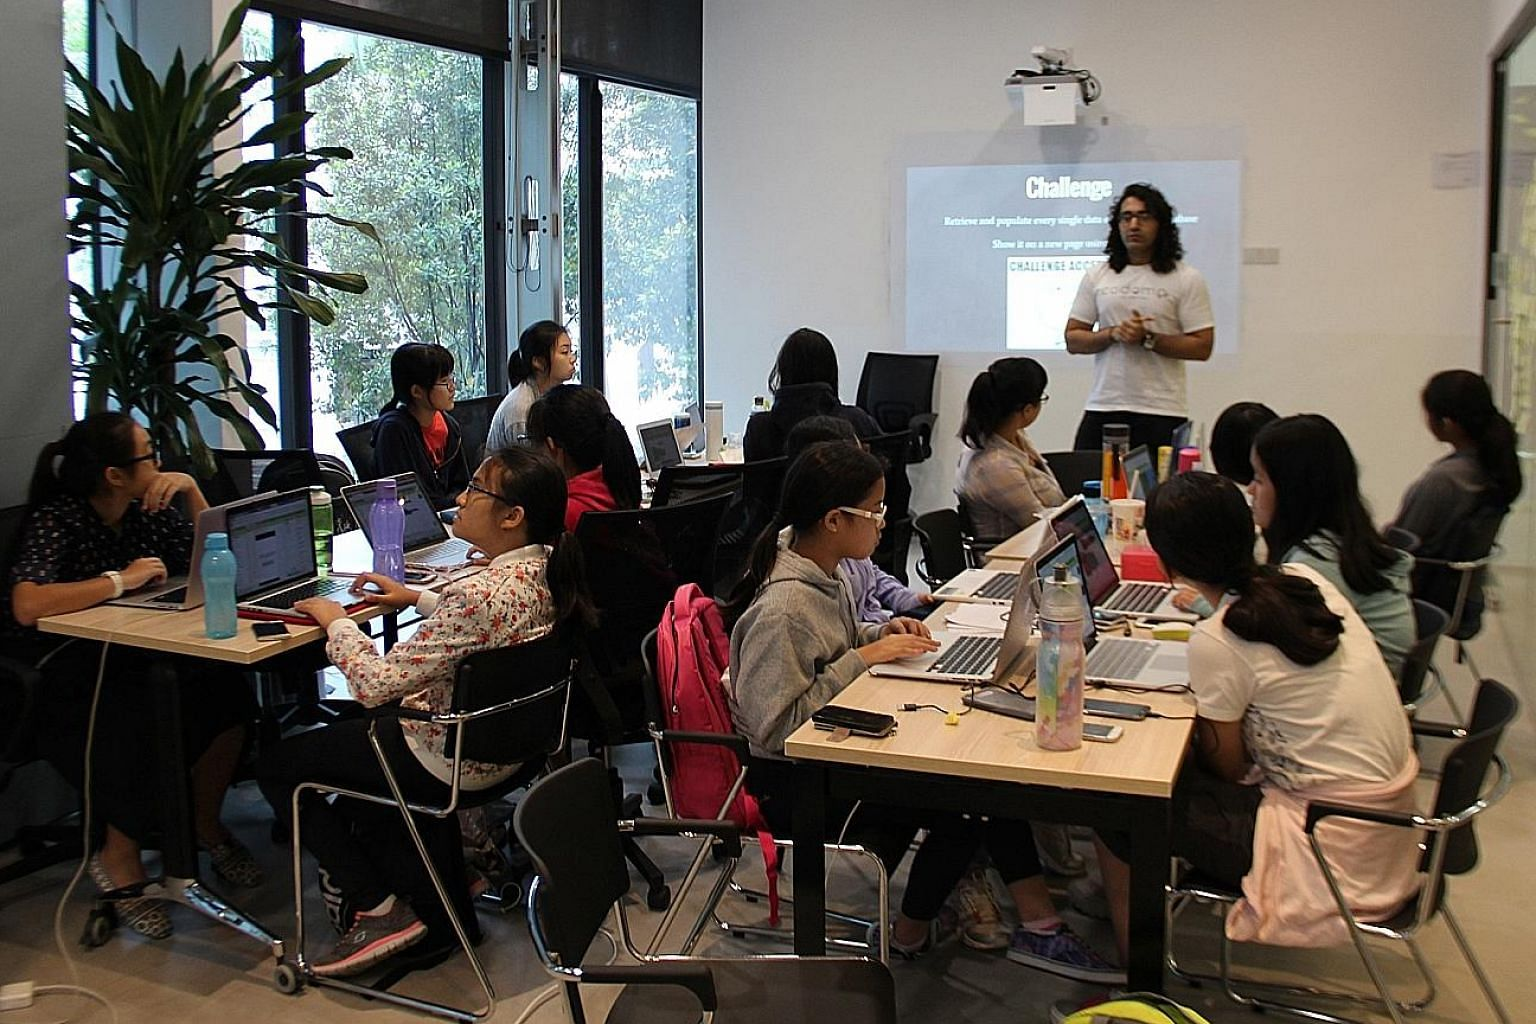 At a coding camp organised by charity 21C Girls and credit card firm Visa, girls acquire the basics relevant to a career in the tech industry. Charity founder Ayesha Khanna says she wants to build an environment where girls can discover how coding wi